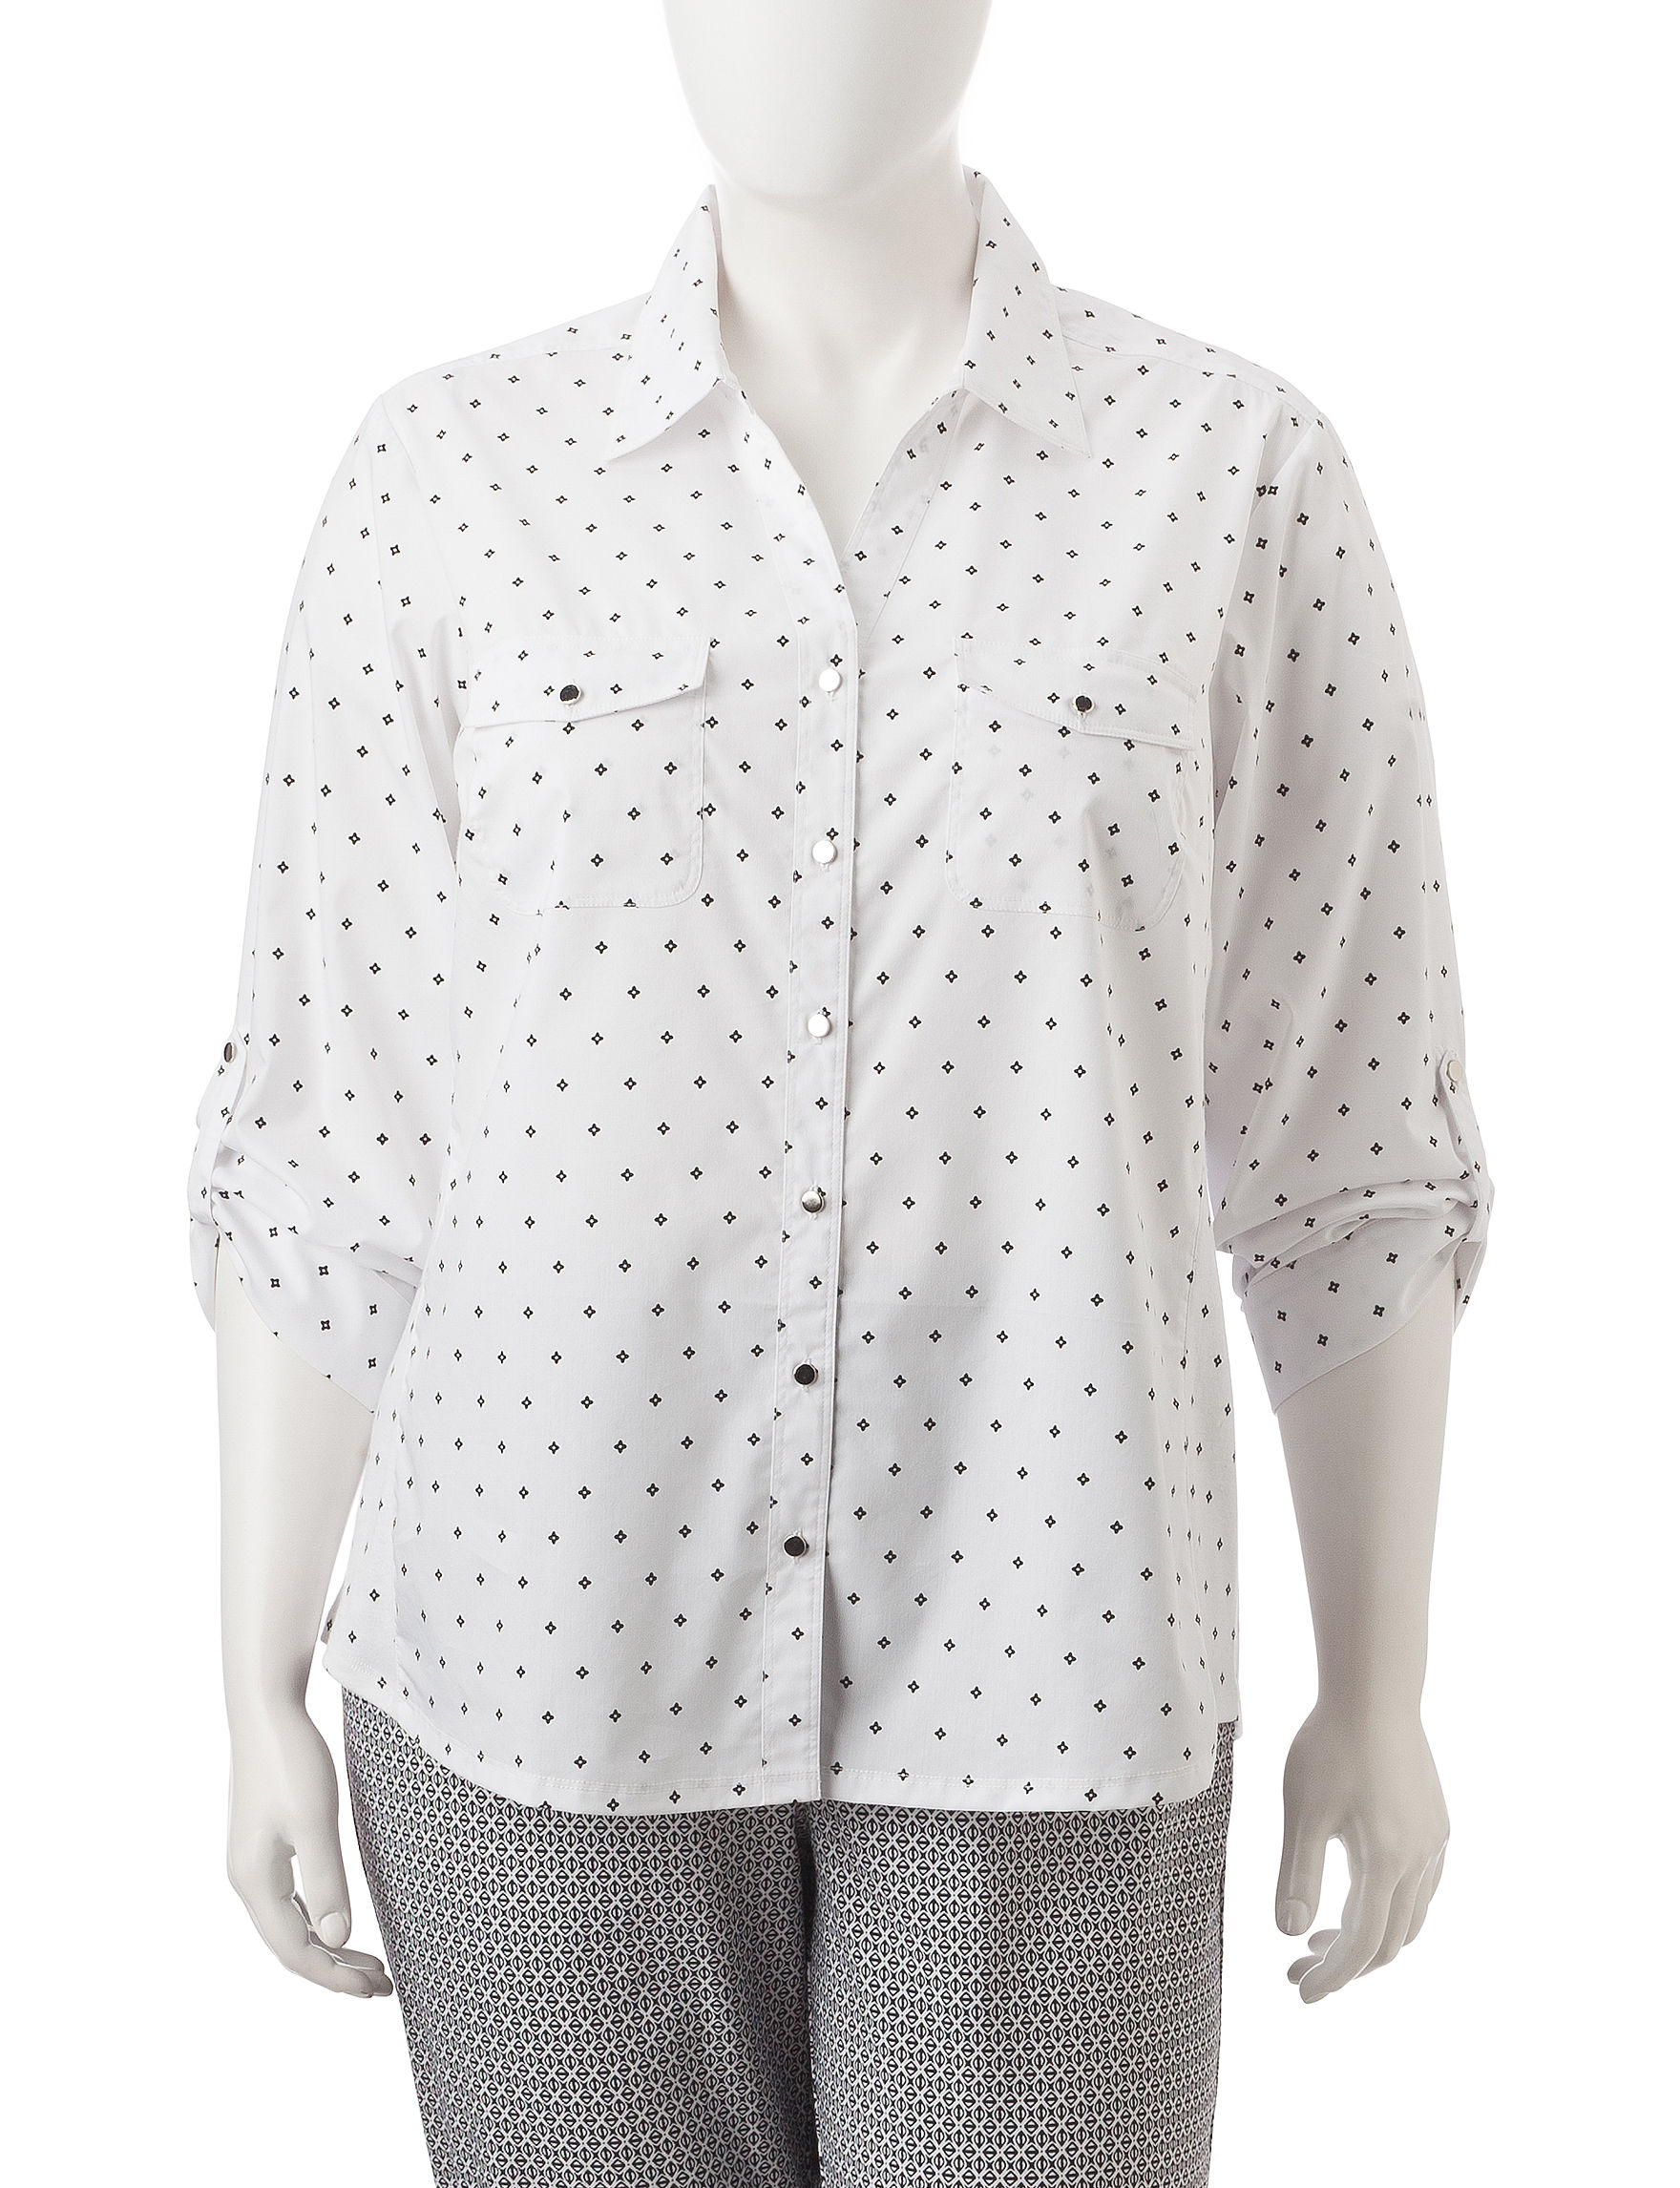 Cathy Daniels Black /  White Casual Button Down Shirts Shirts & Blouses